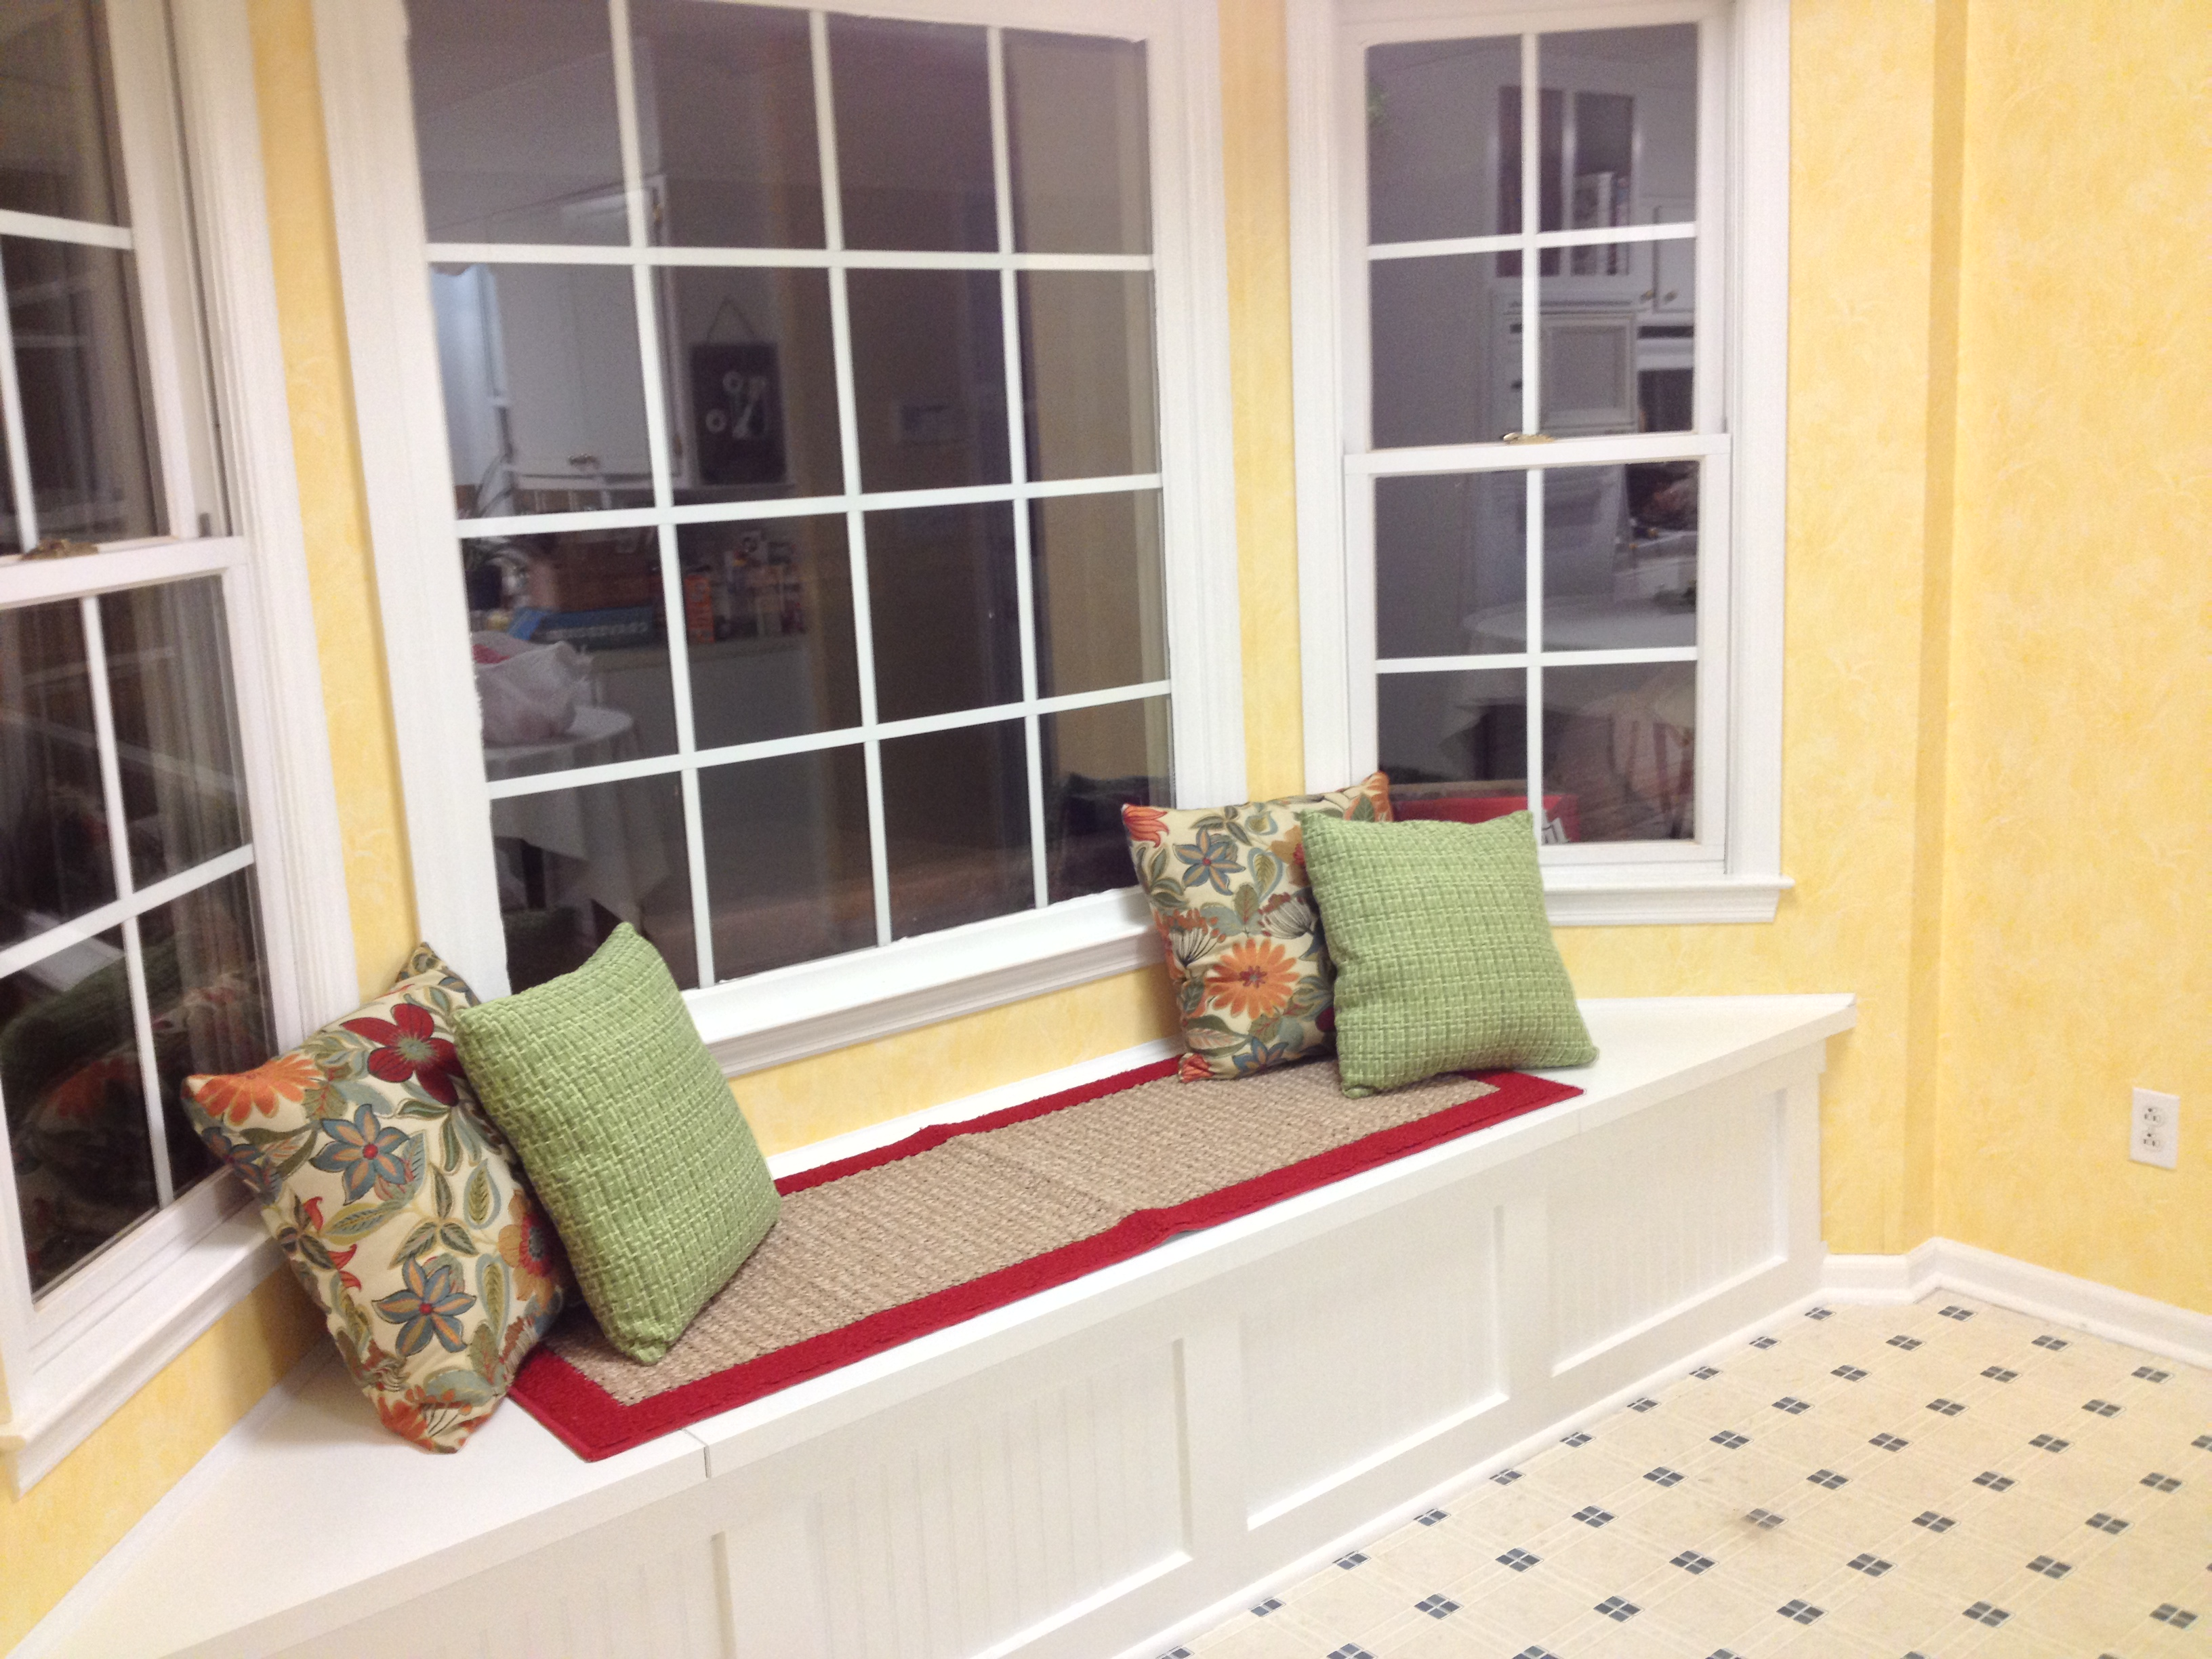 Incredible Build A Window Seat With Storage 7 Steps With Pictures Bralicious Painted Fabric Chair Ideas Braliciousco